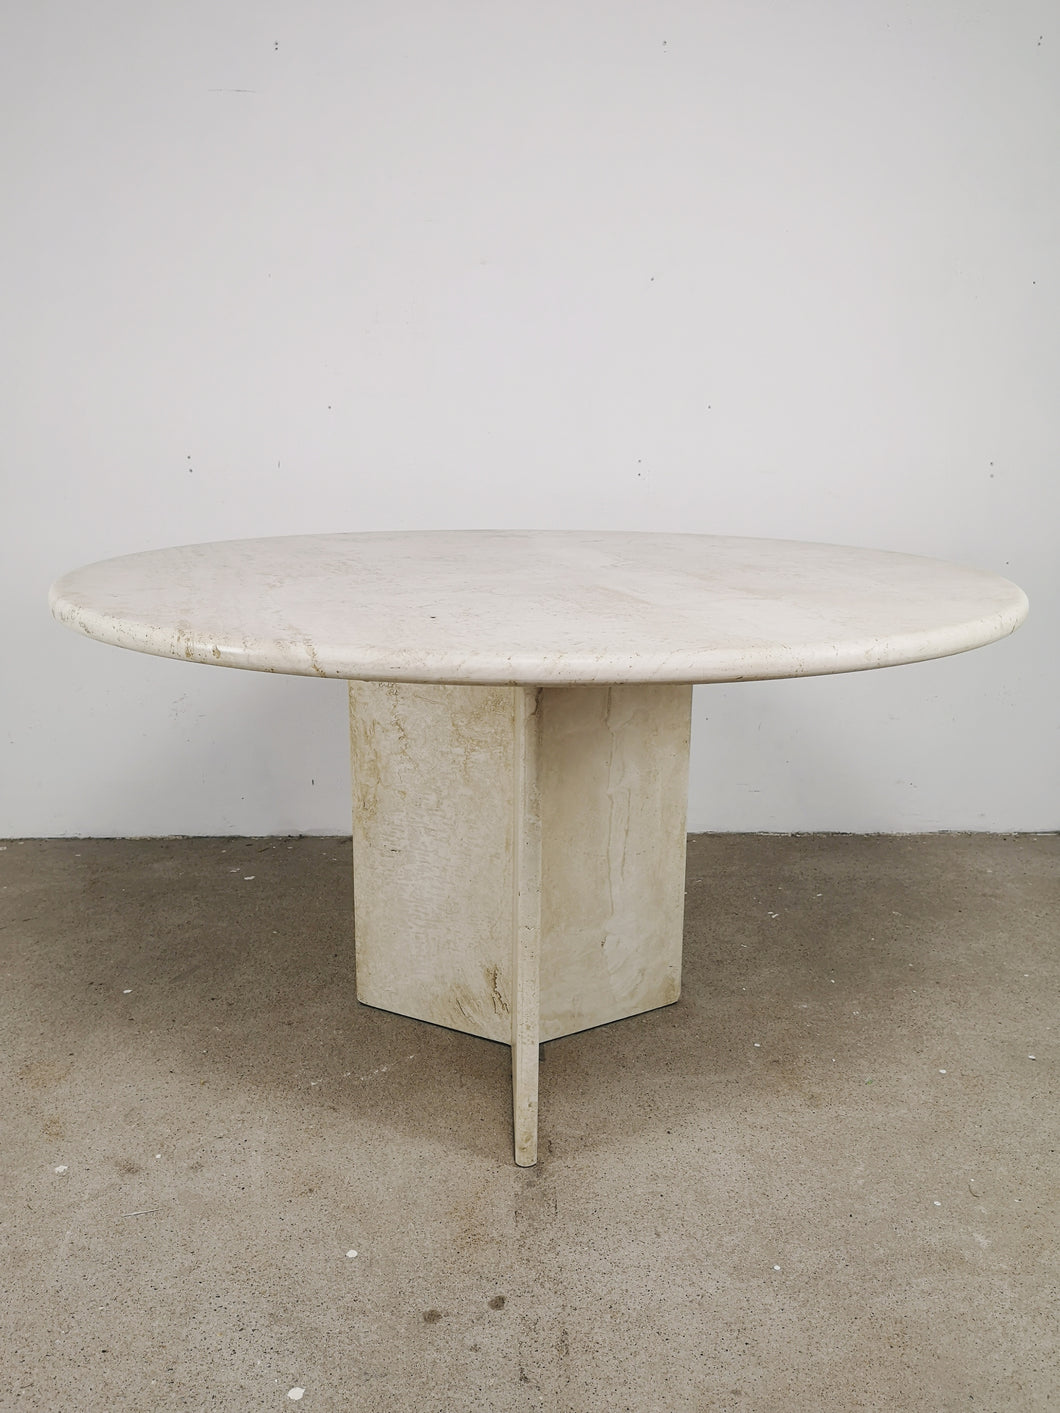 TRAVERTIN ROUND DINING TABLE